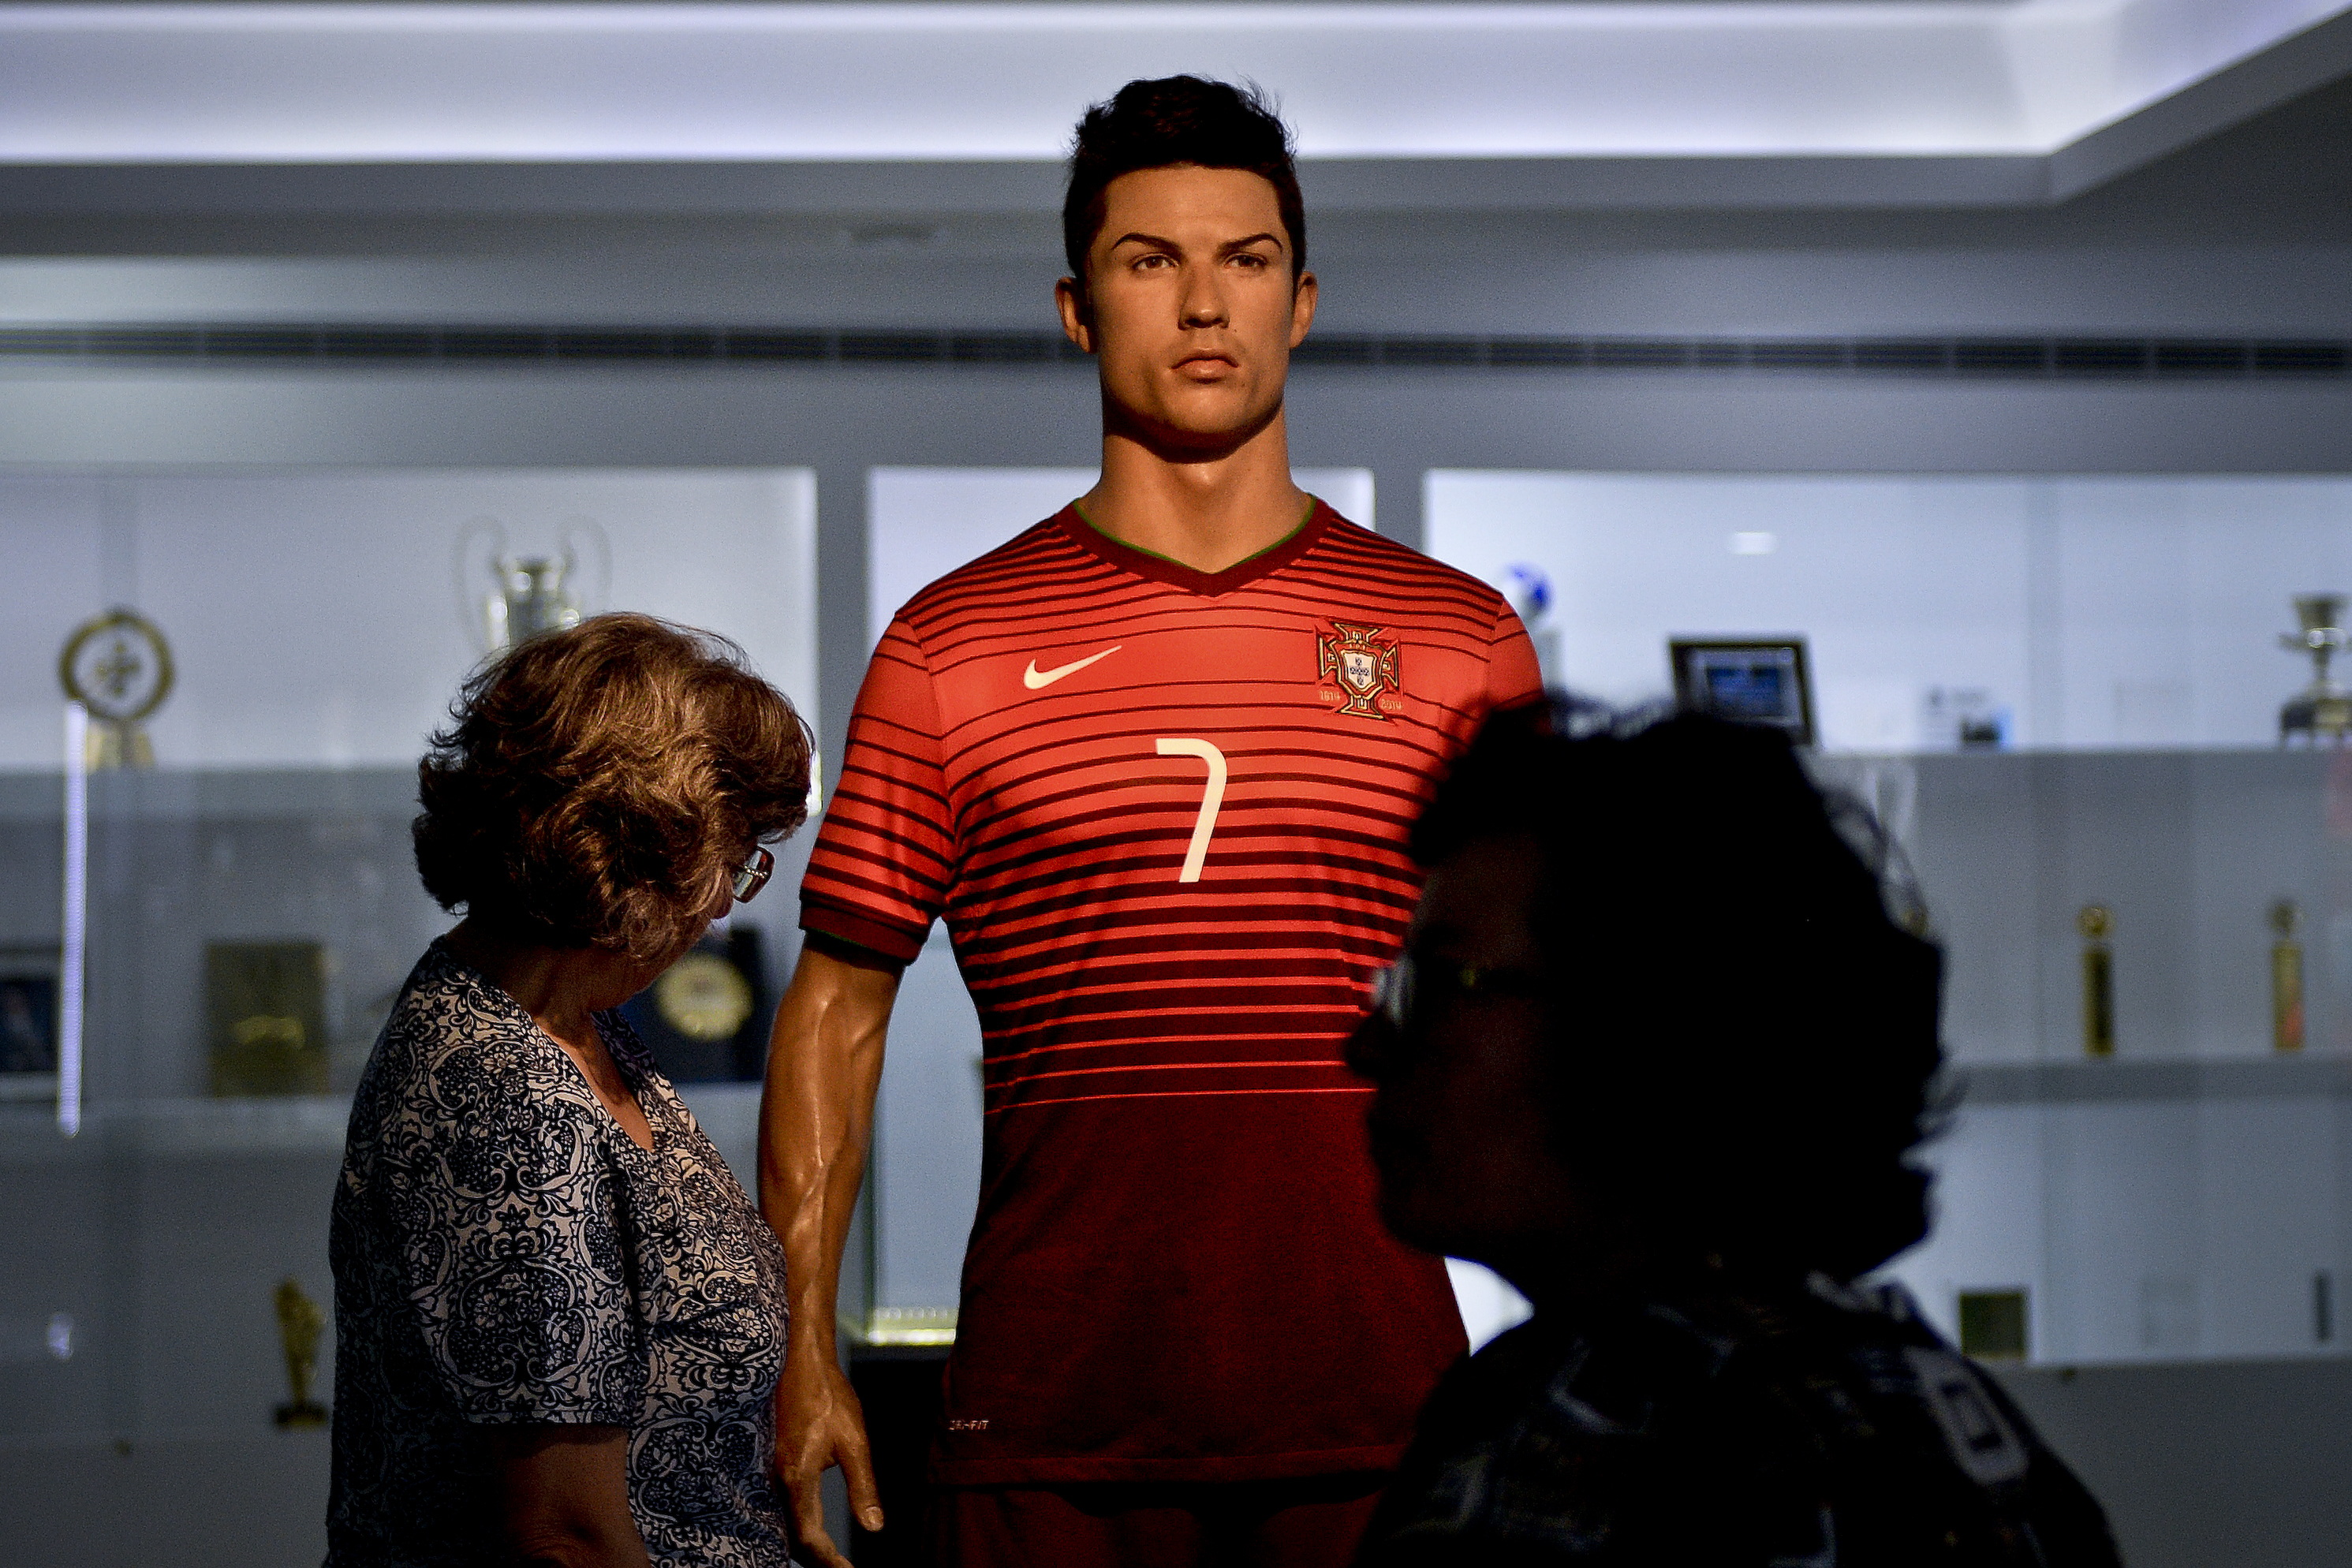 (FILES) People pass by a wax figure of Cristiano Ronaldo at CR7 Museum in Funchal, Madeira island on April 29, 2016. The Museum of Cristiano Ronaldo, which is a collection of countless awards from the football star, moved on June 6, 2016 in a space three times larger, situated on the seafront of Funchal, capital of his native island of Madeira. / AFP PHOTO / PATRICIA DE MELO MOREIRA / RESTRICTED TO EDITORIAL USE - NO ARCHIVES